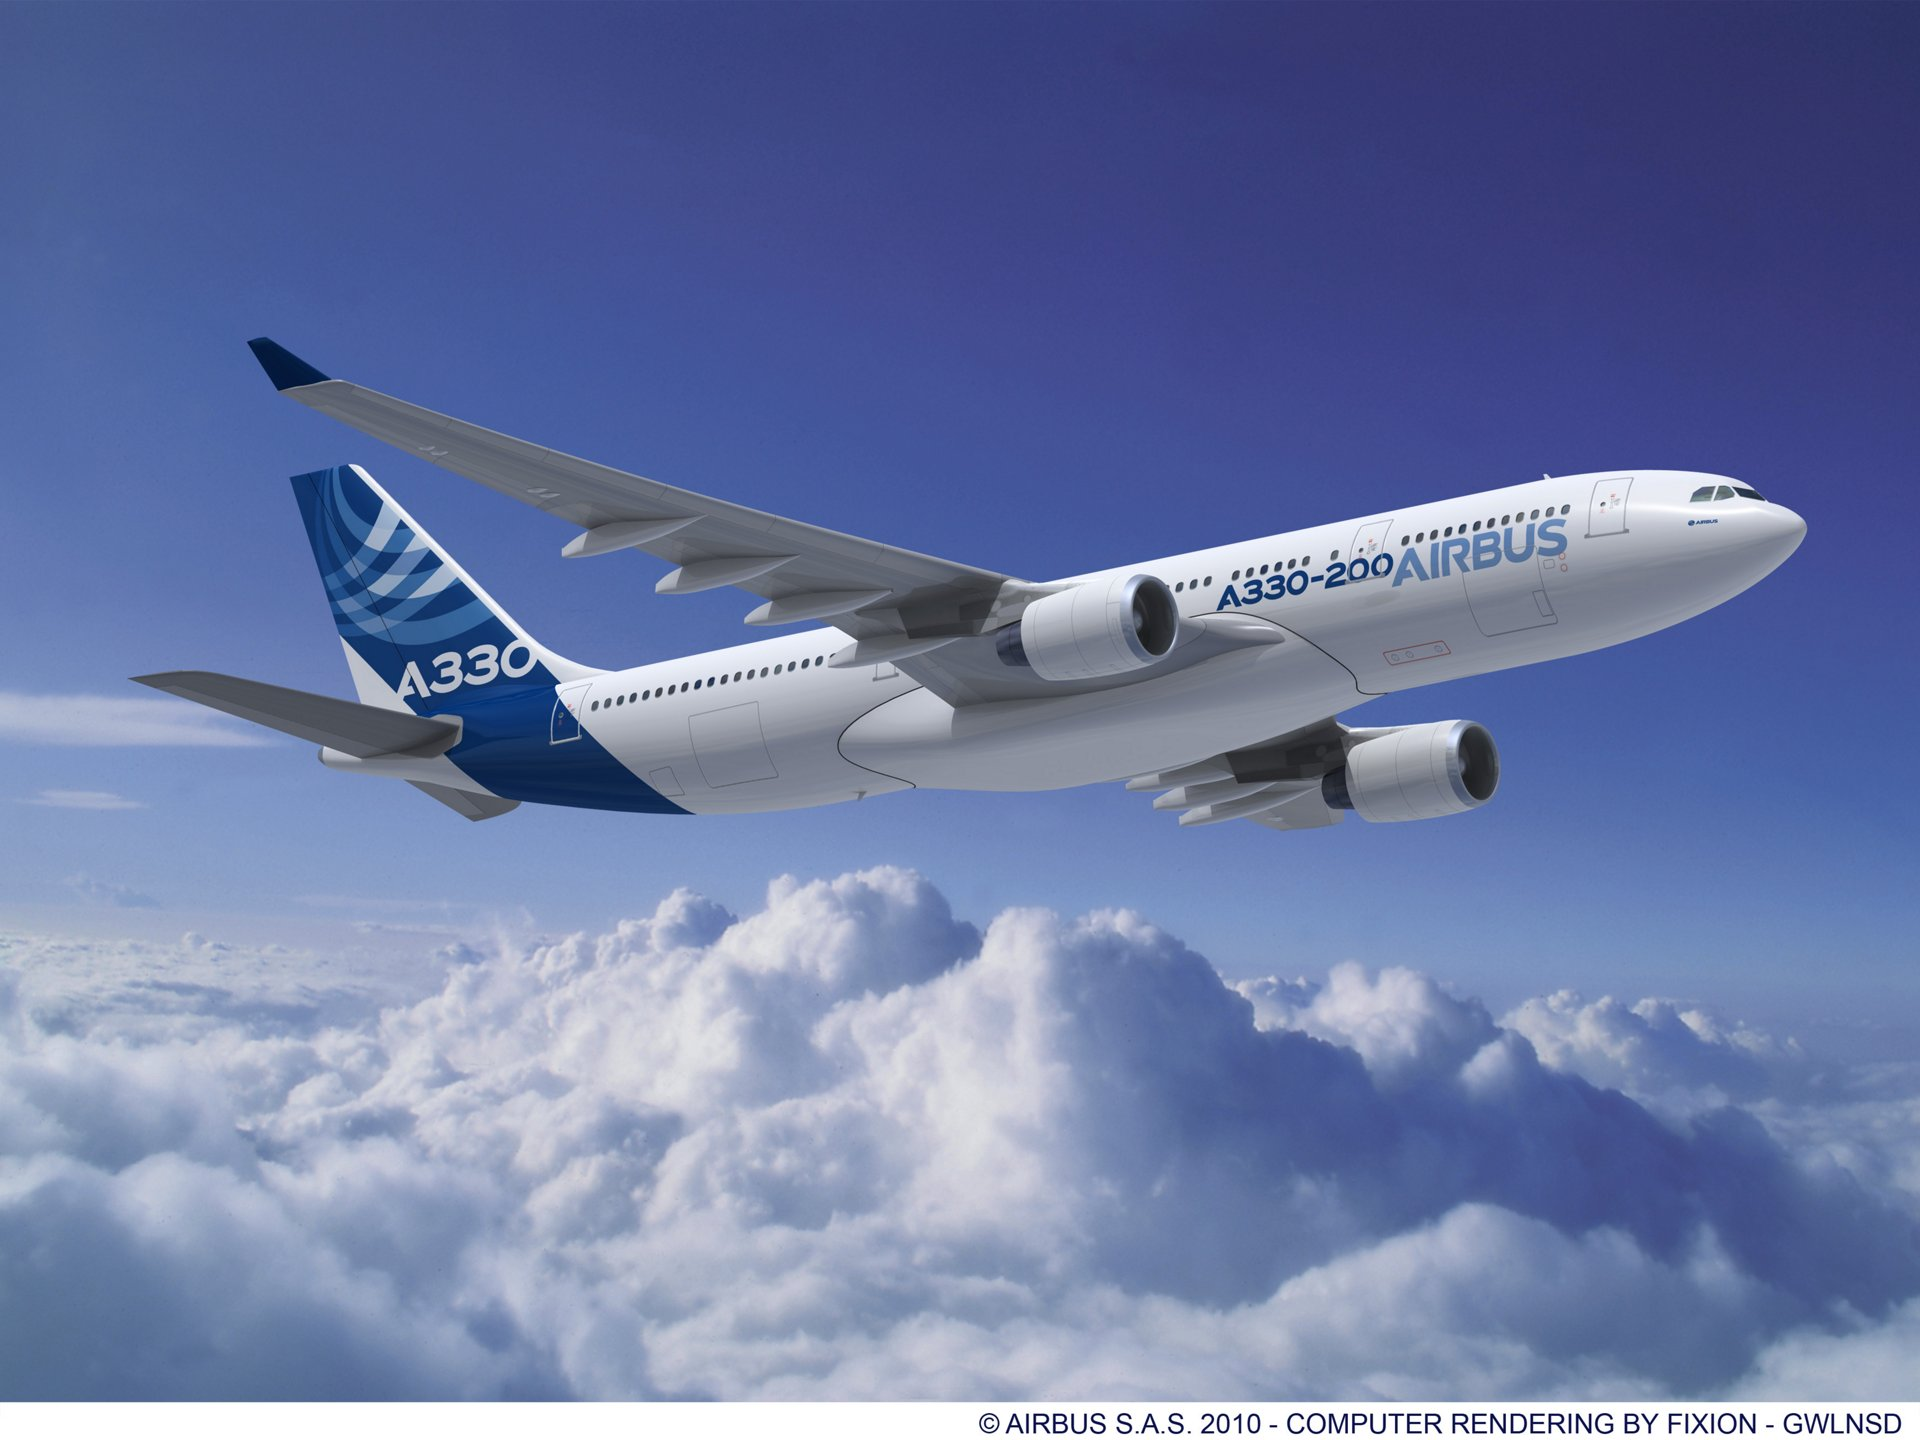 The Airbus A330-200, here with PW engines. The versatile mid-size widebody.